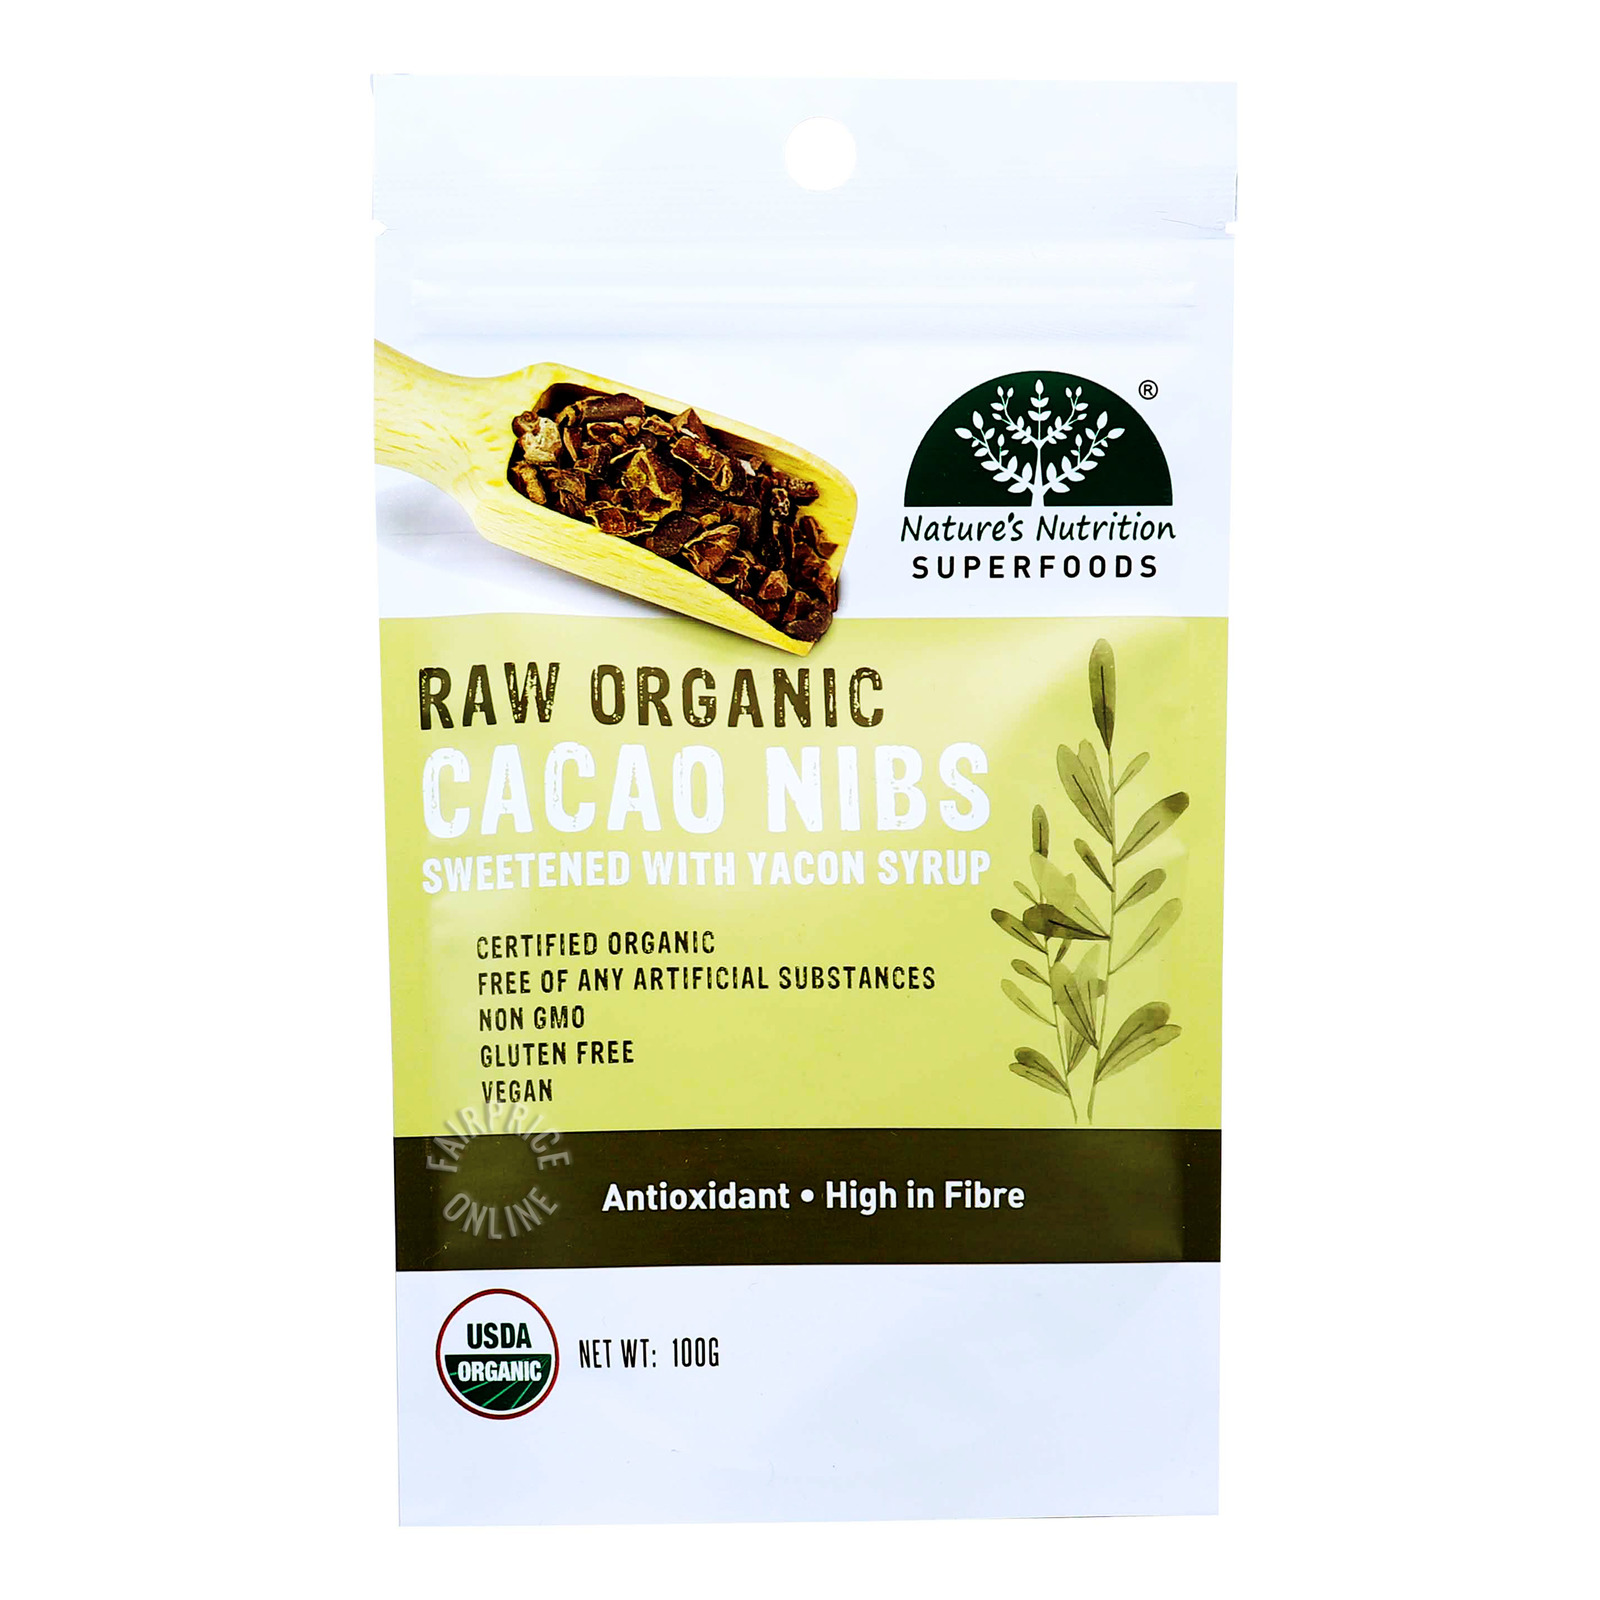 Nature's Nutrition Superfoods - Raw Organic Cacao Nibs